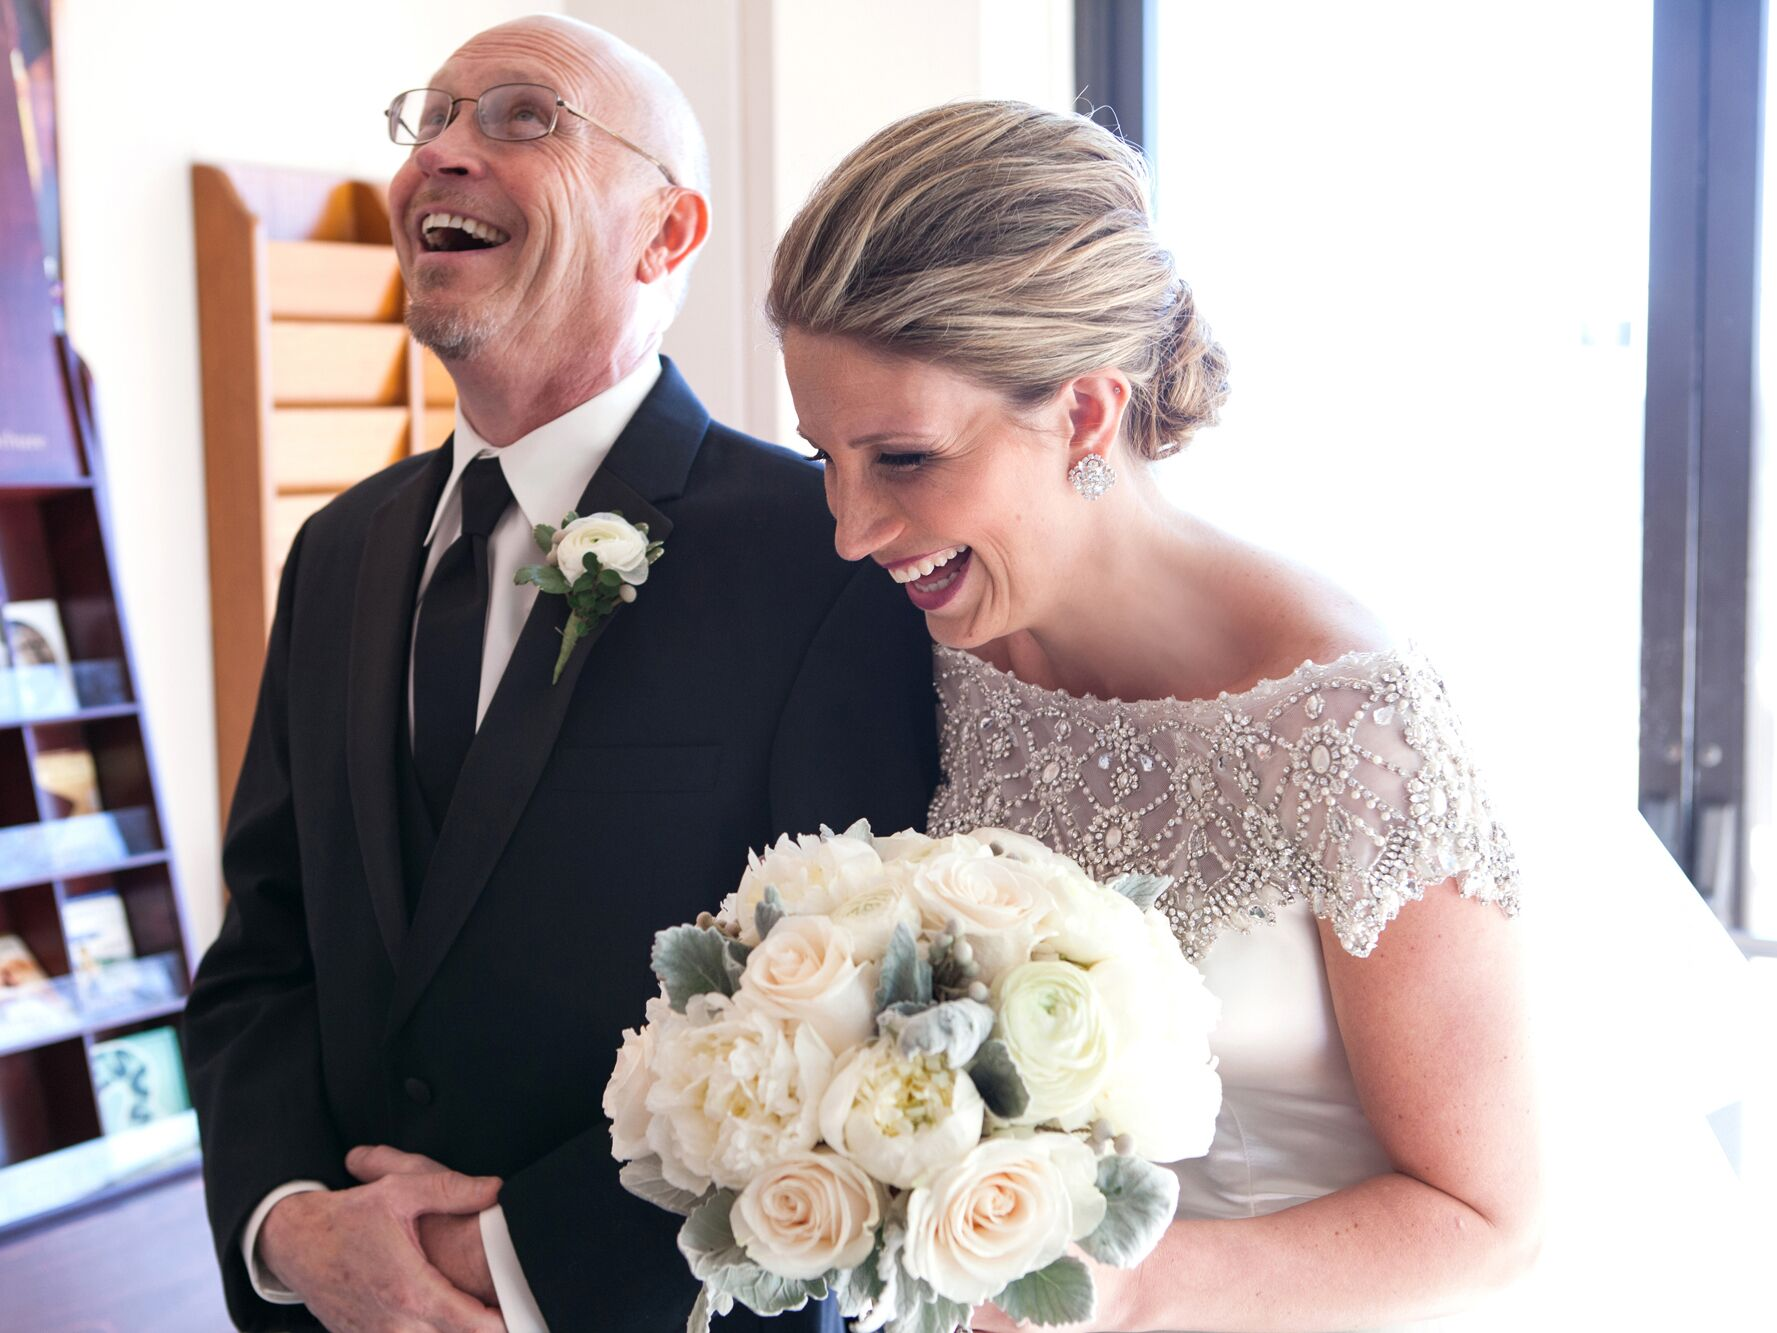 13 Father-Daughter Wedding Pictures That Explain Why We